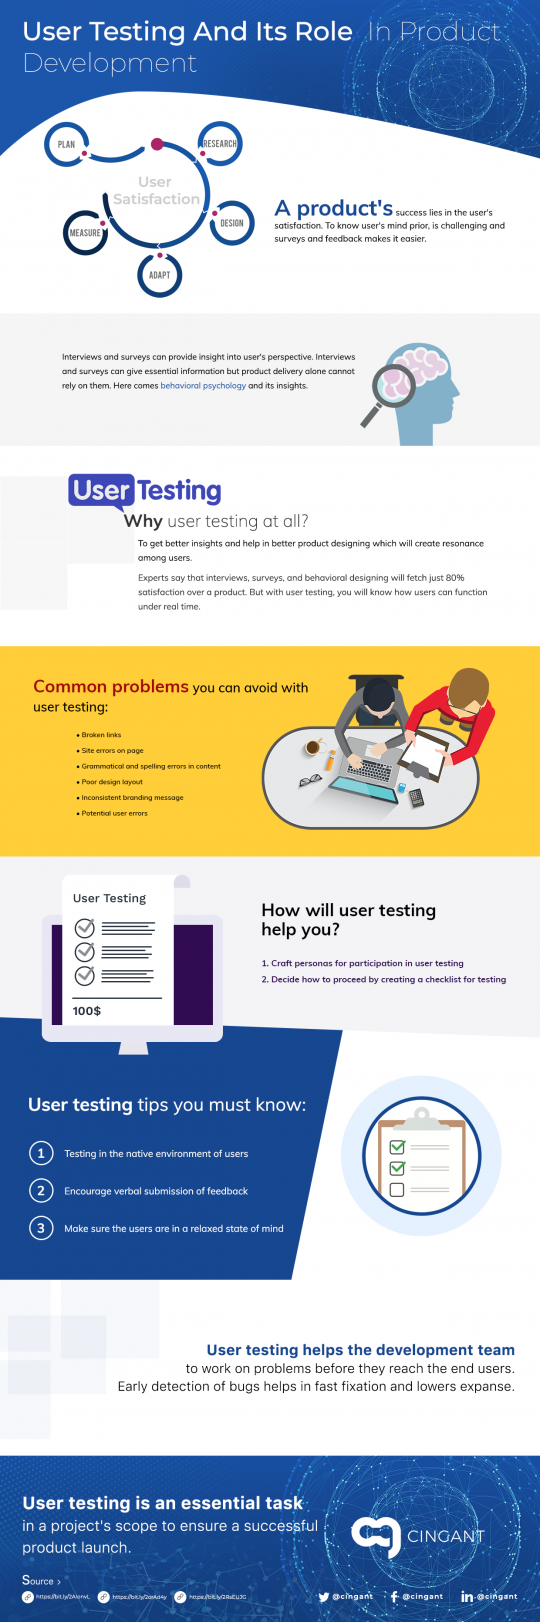 Role of User Testing in Product Development